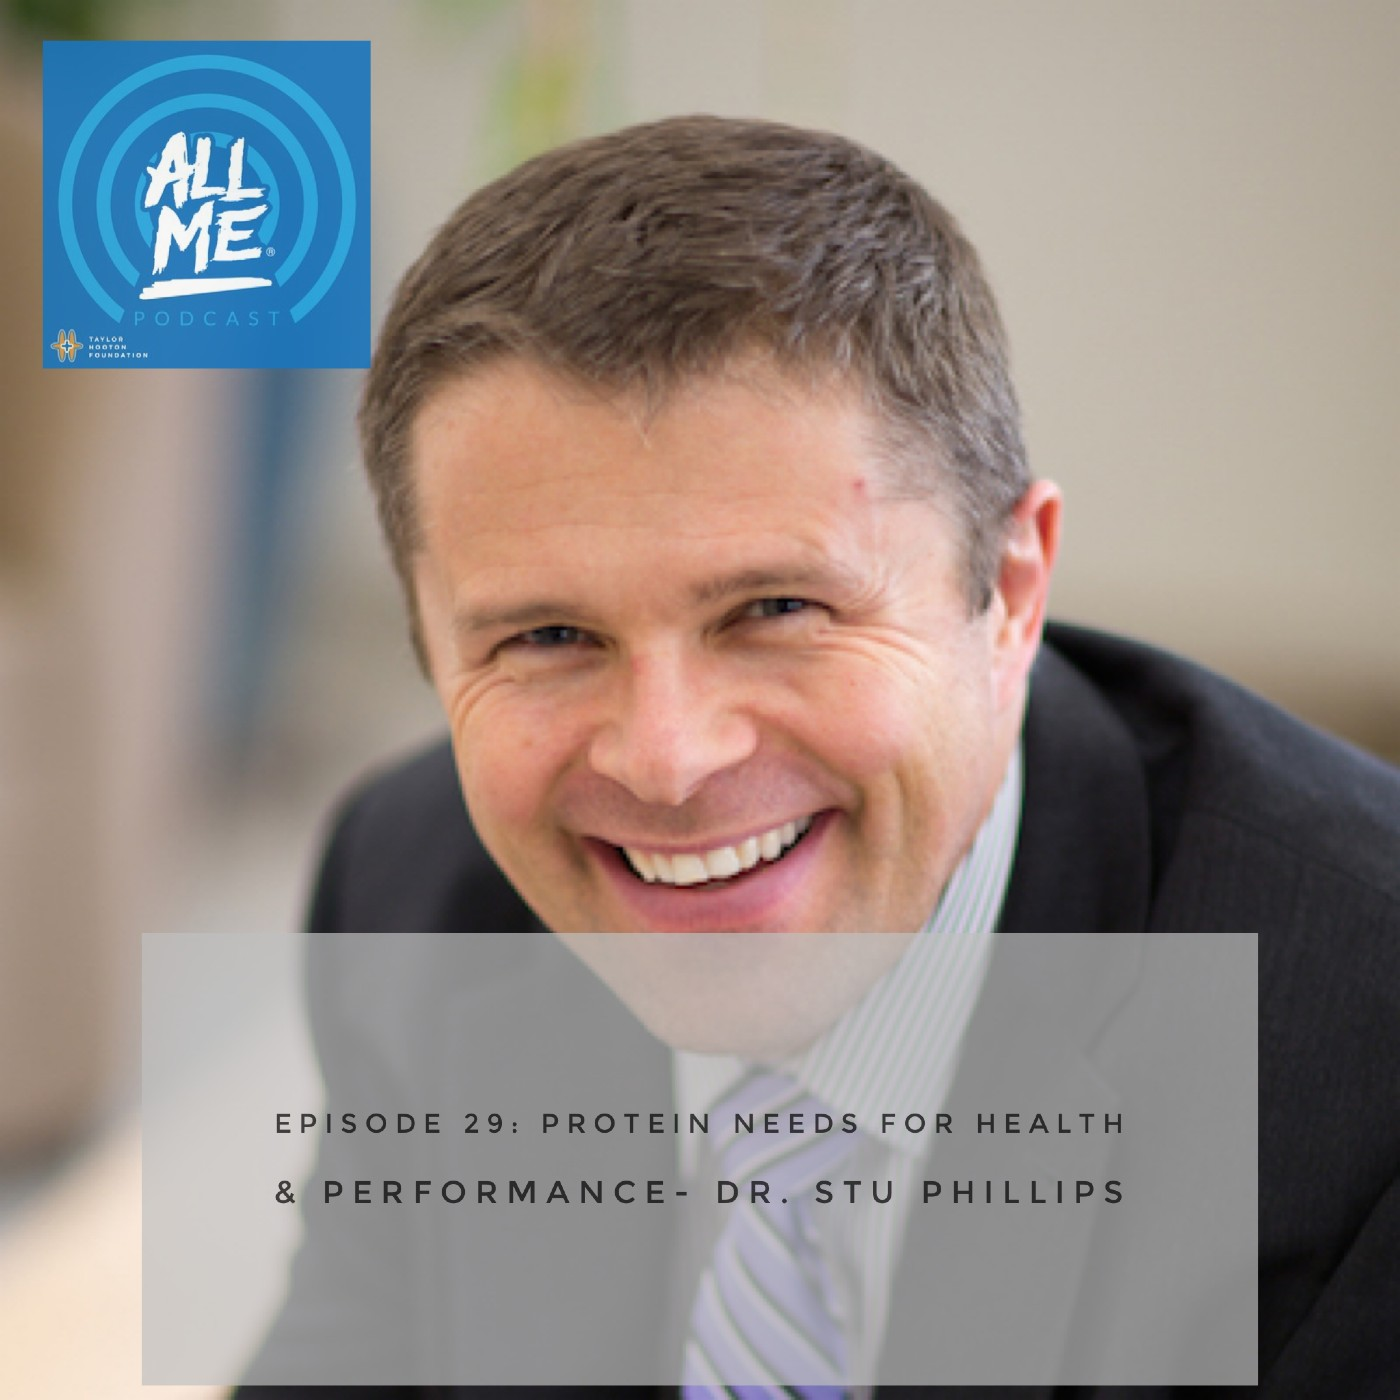 Episode 29: Protein Needs for Health and Performance - Dr. Stu Phillips